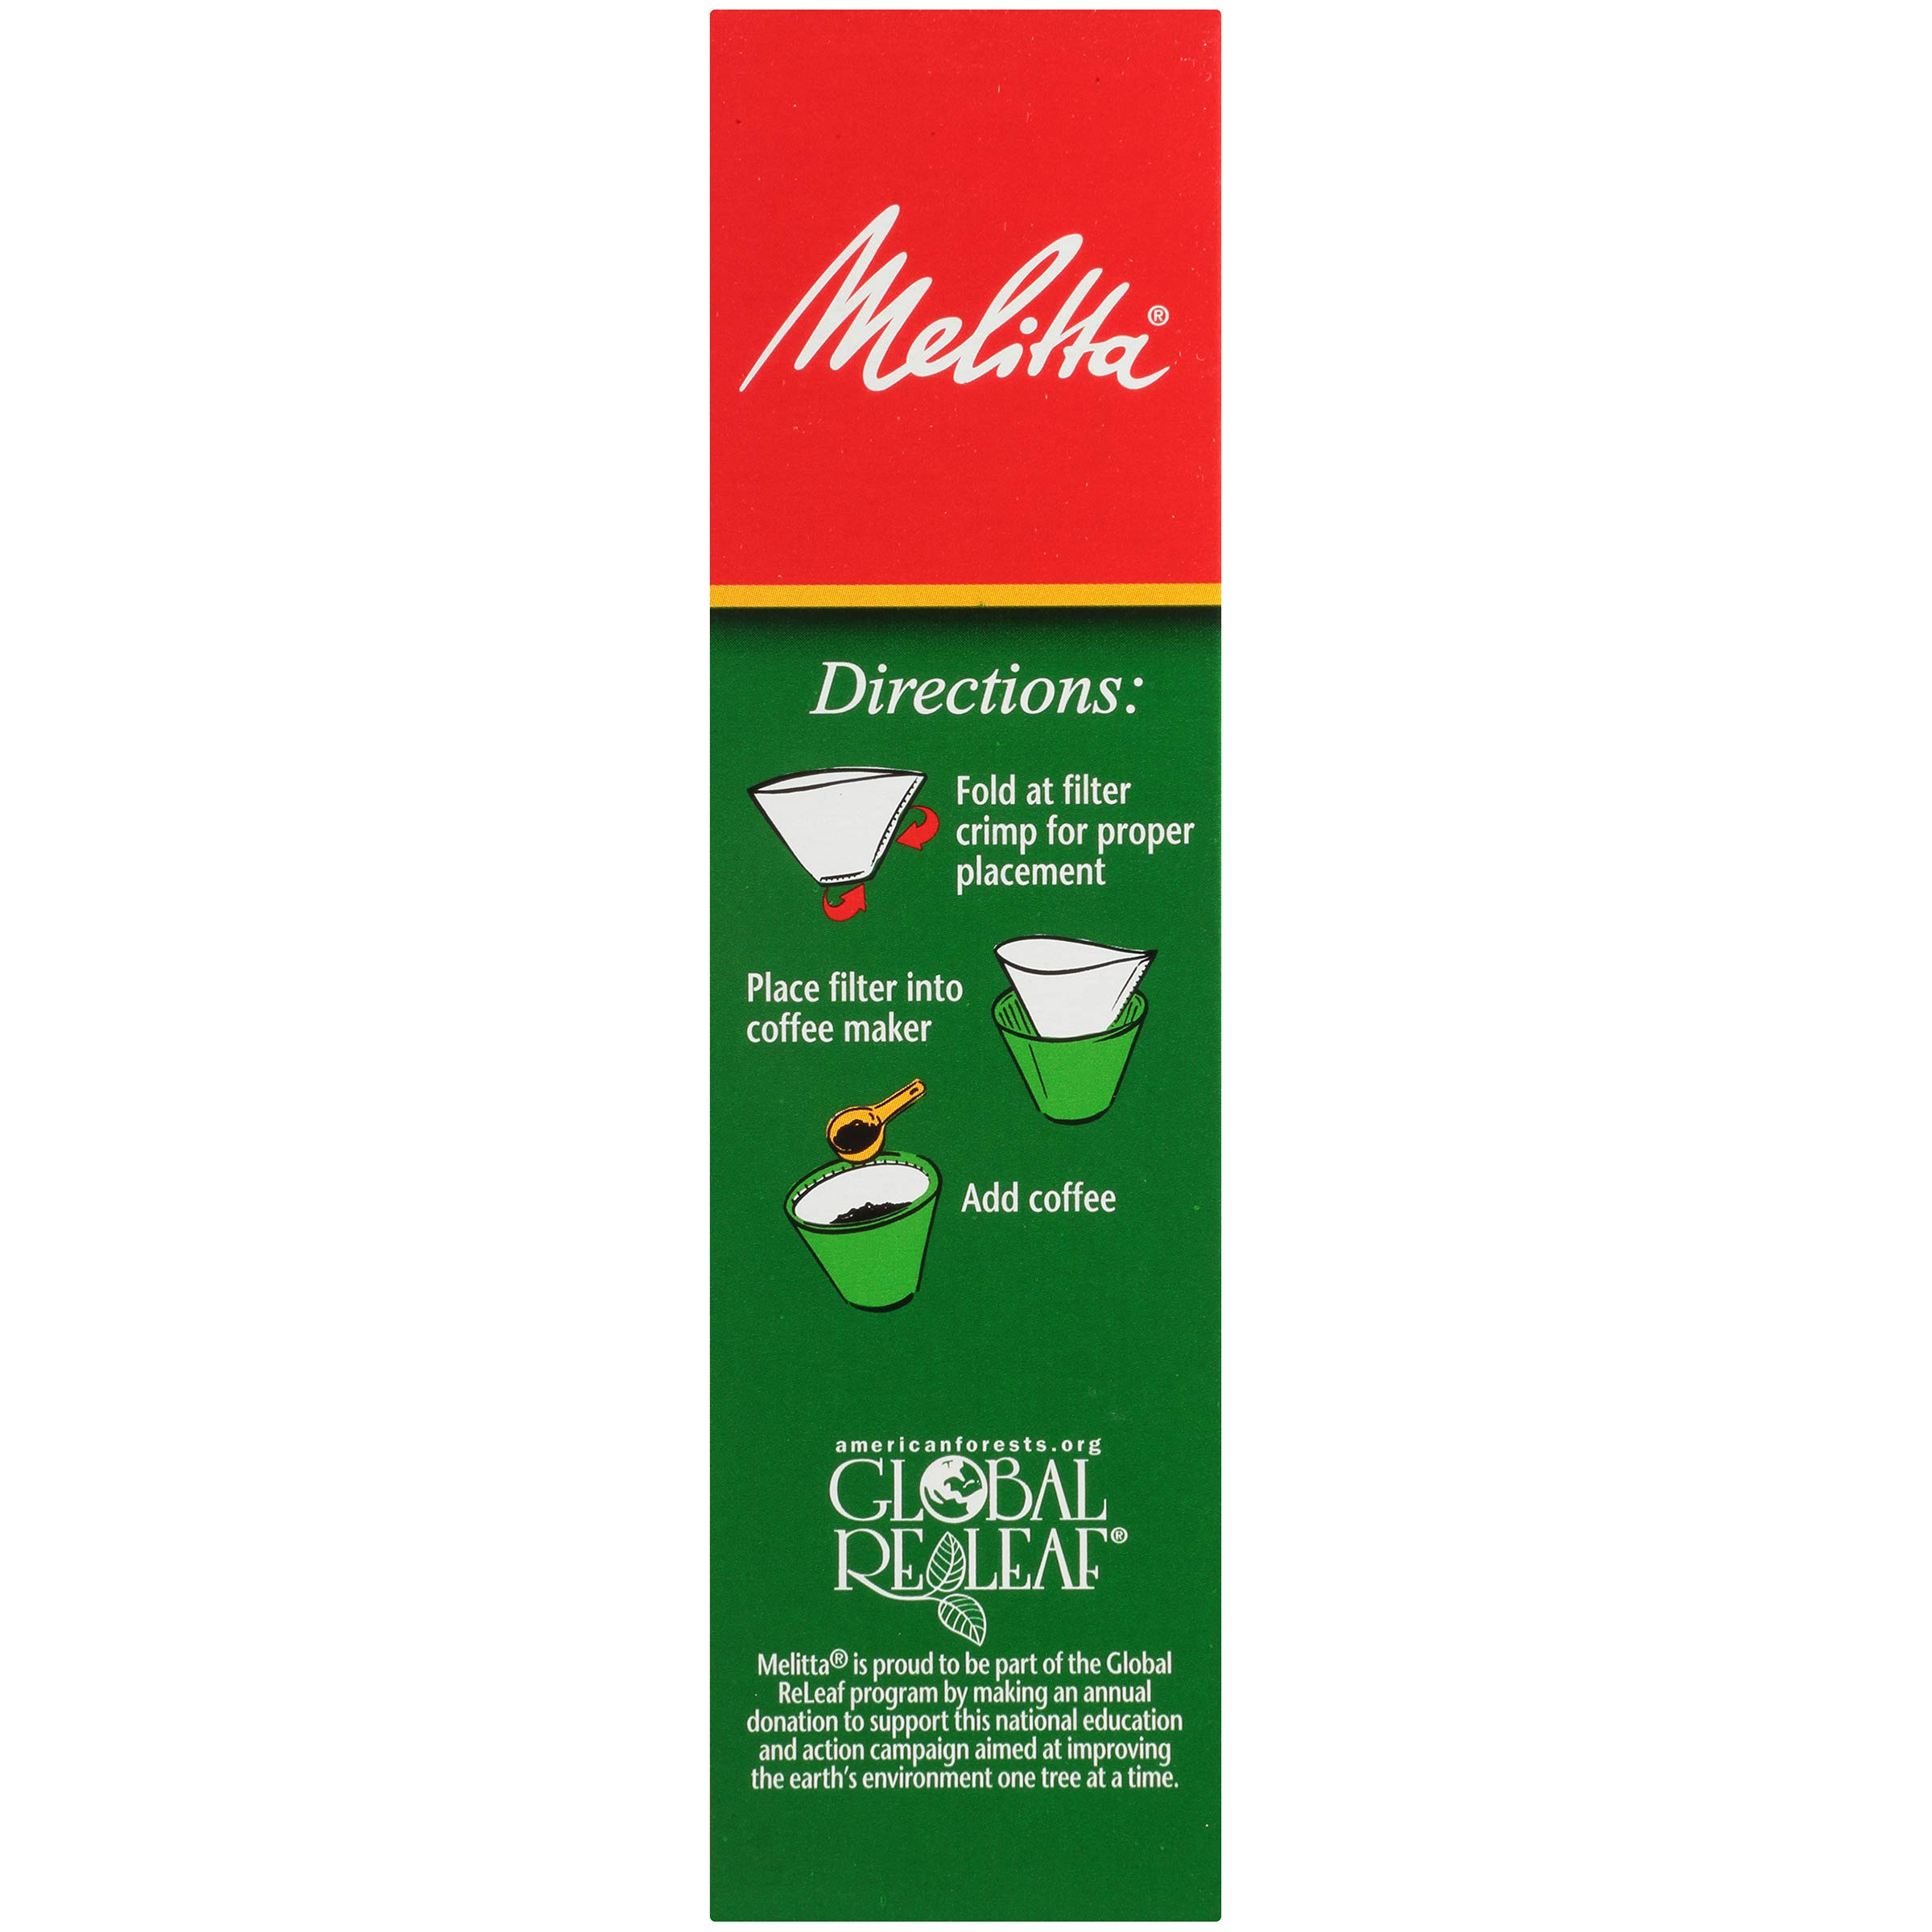 Melitta (624102C) #4 Super Premium Cone Coffee Filters, White, 100 Count (Pack of 12) Replacement Coffee Maker Filters by Melitta (Image #5)